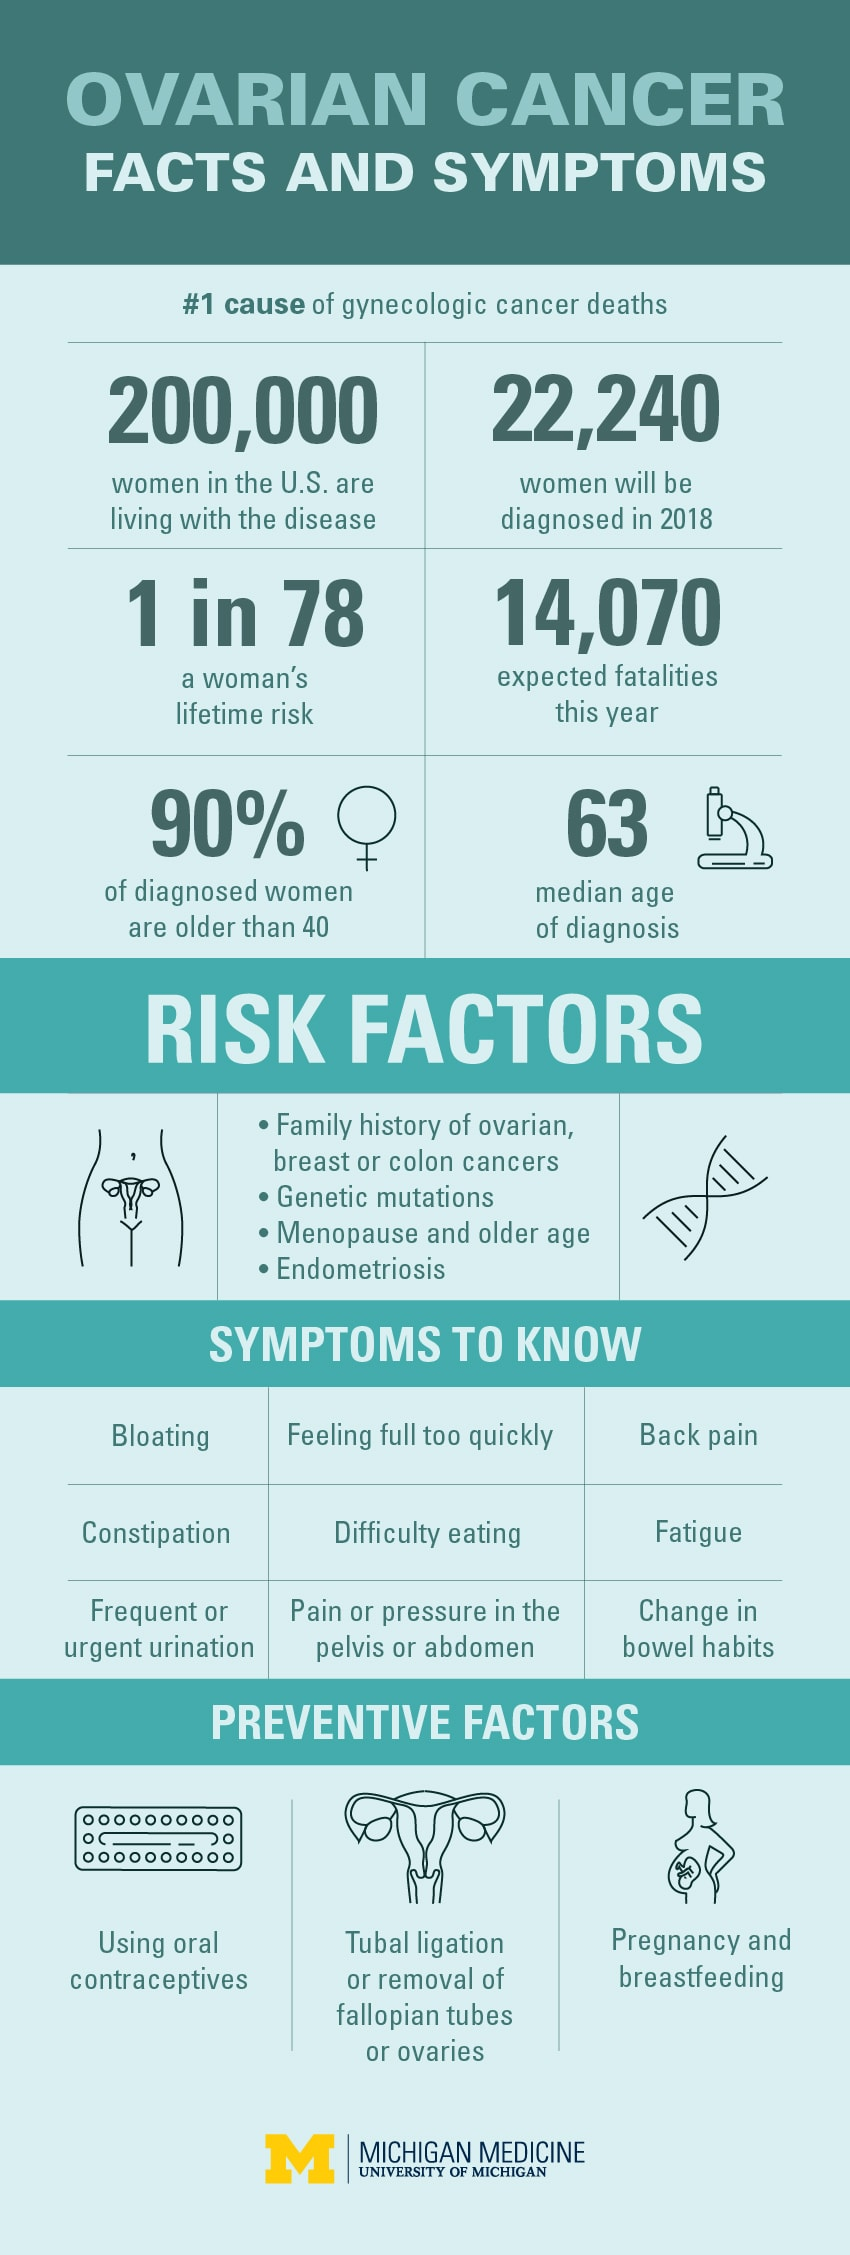 Ovarian Cancer Symptoms, Risk Factors and Prevention Infographic